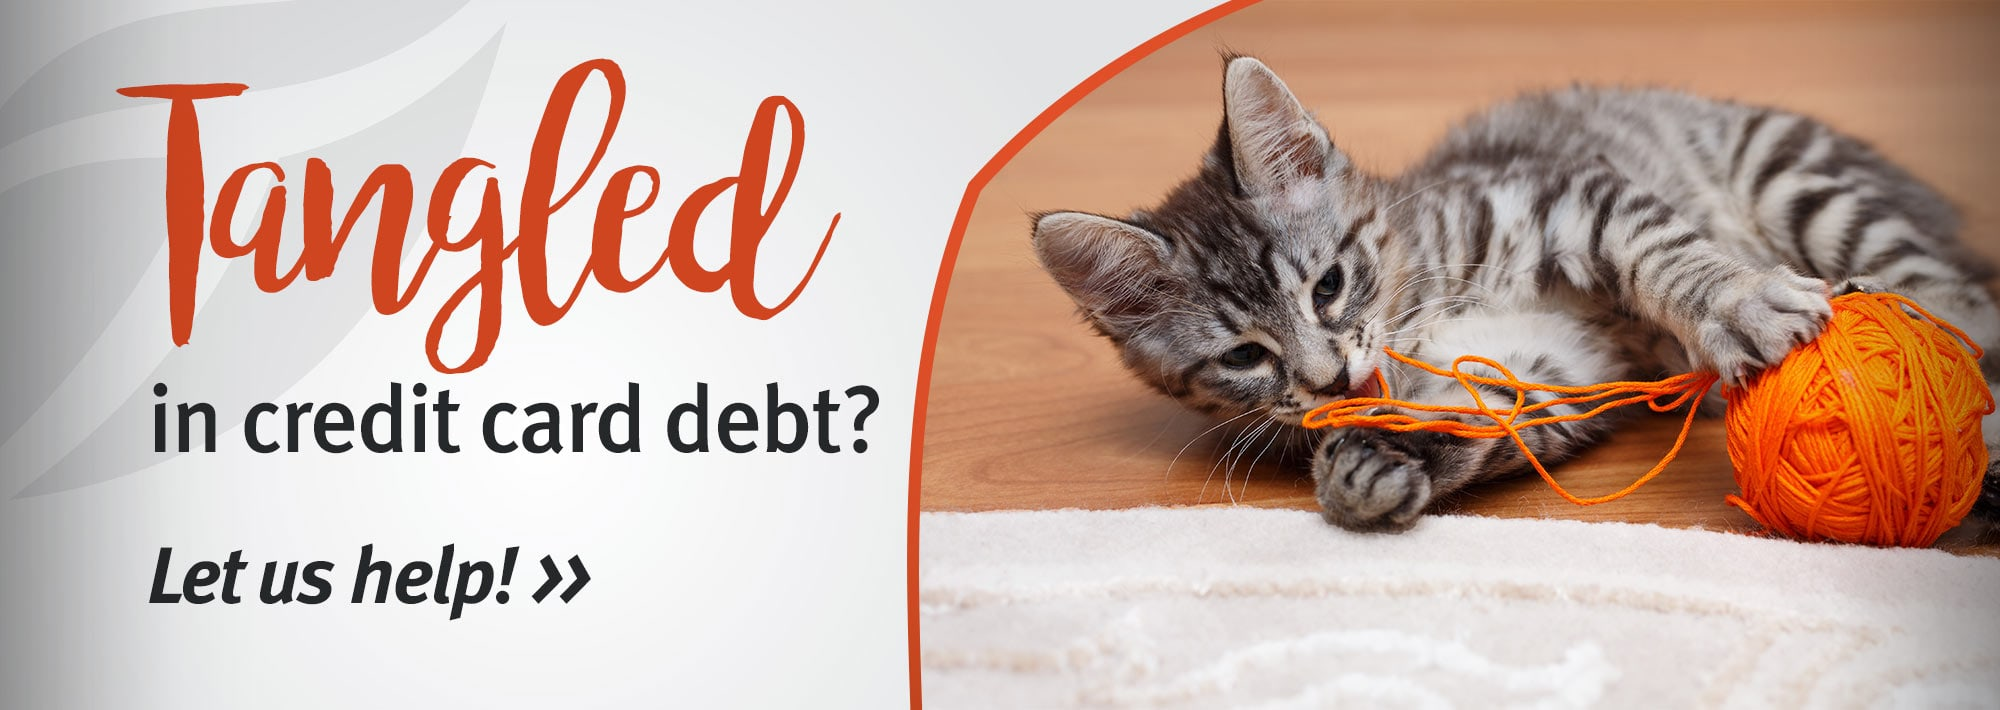 Tangled in credit card debt? Let us help!